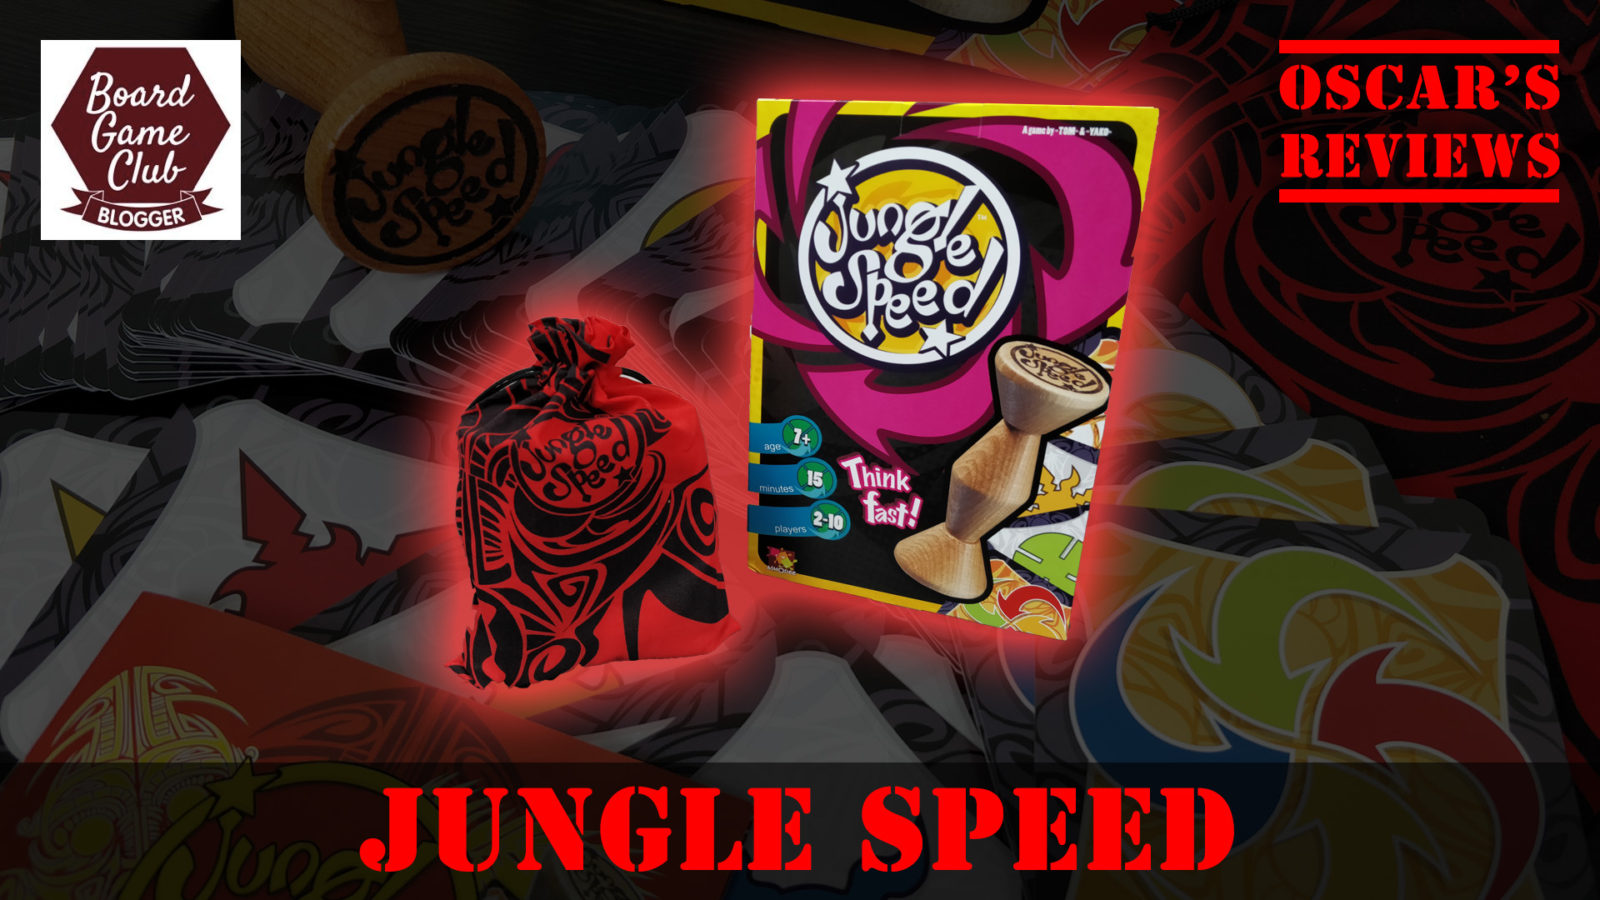 Trying Out the Jungle Speed Game – Are We Fast Enough?